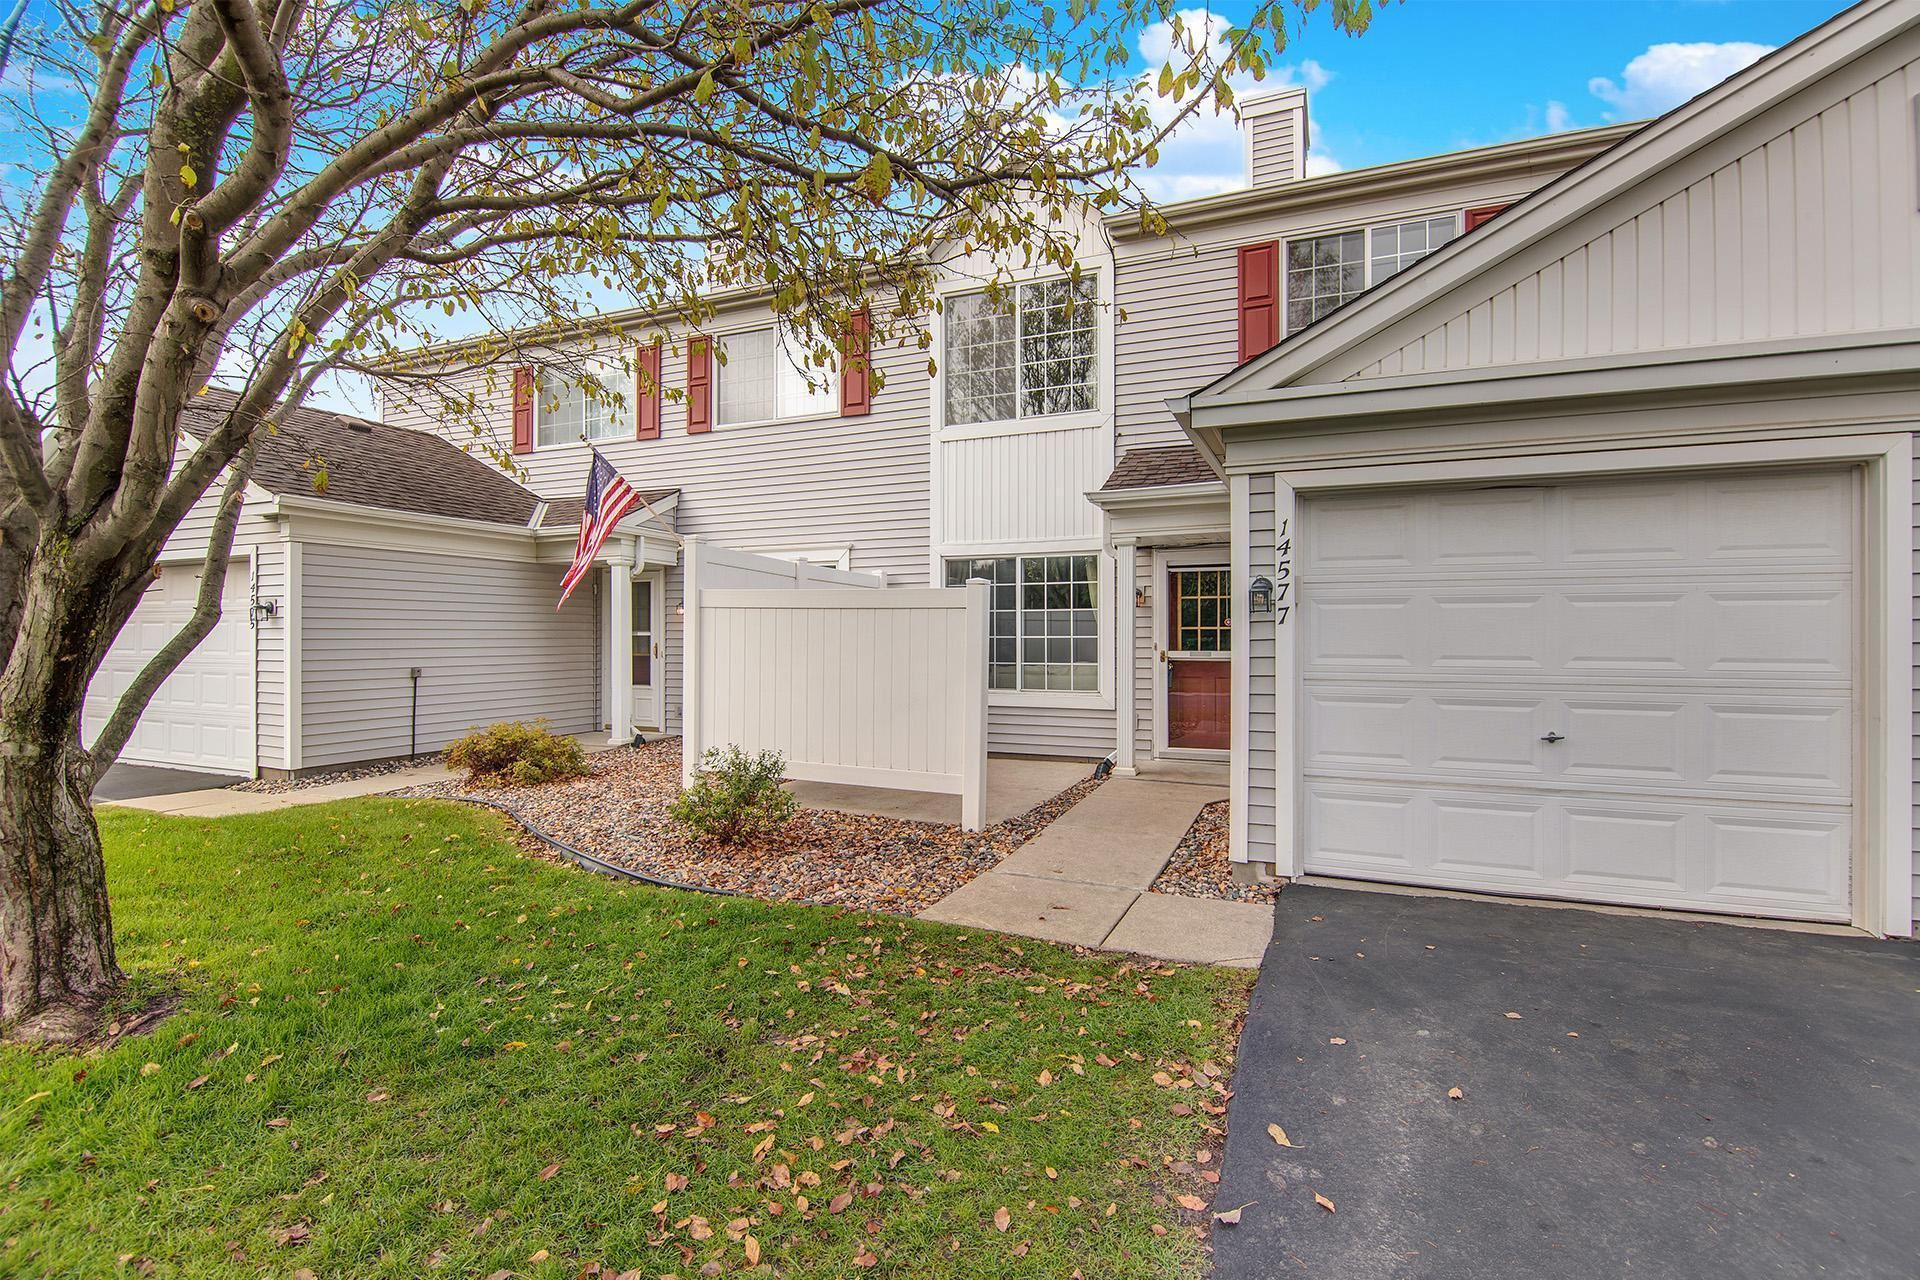 Photo of 14577 Evergreen Trail #51, Apple Valley, MN 55124 (MLS # 6103463)